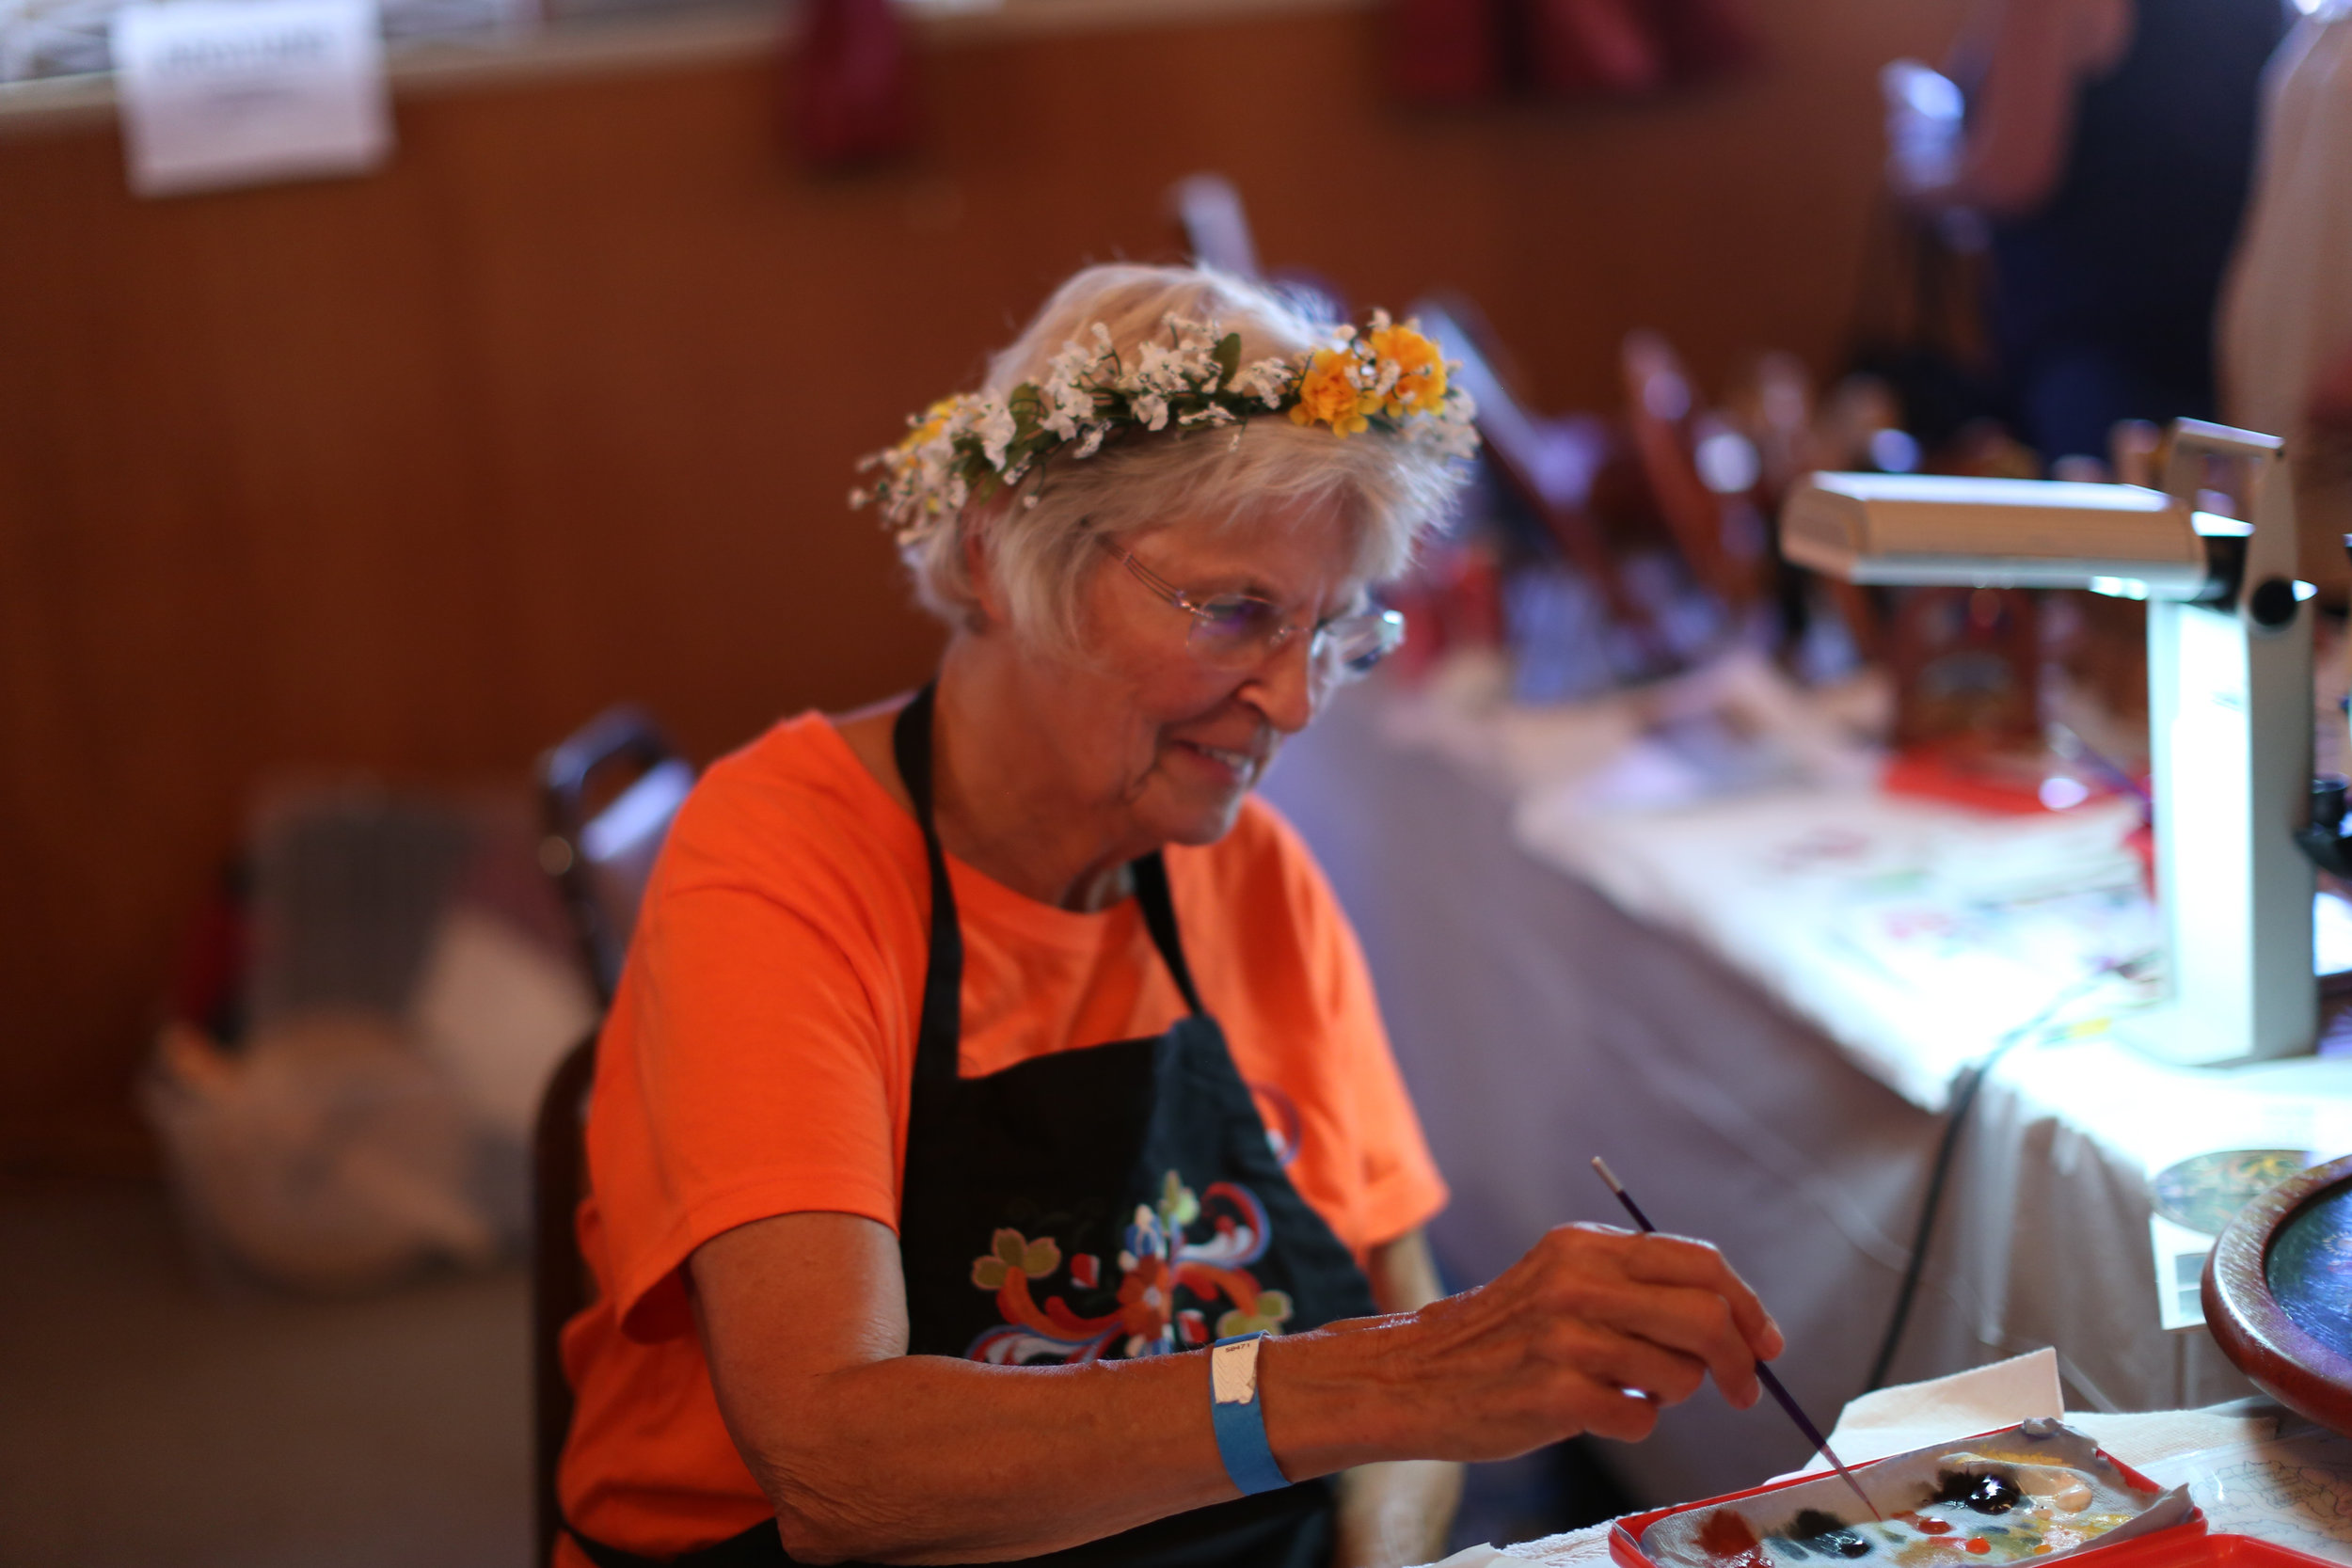 Norway Heritage Hall. Fresh Lefse, Krumkake. Hand crafts and imports from Scandinavia. (Photo: Vista Viking Festival)